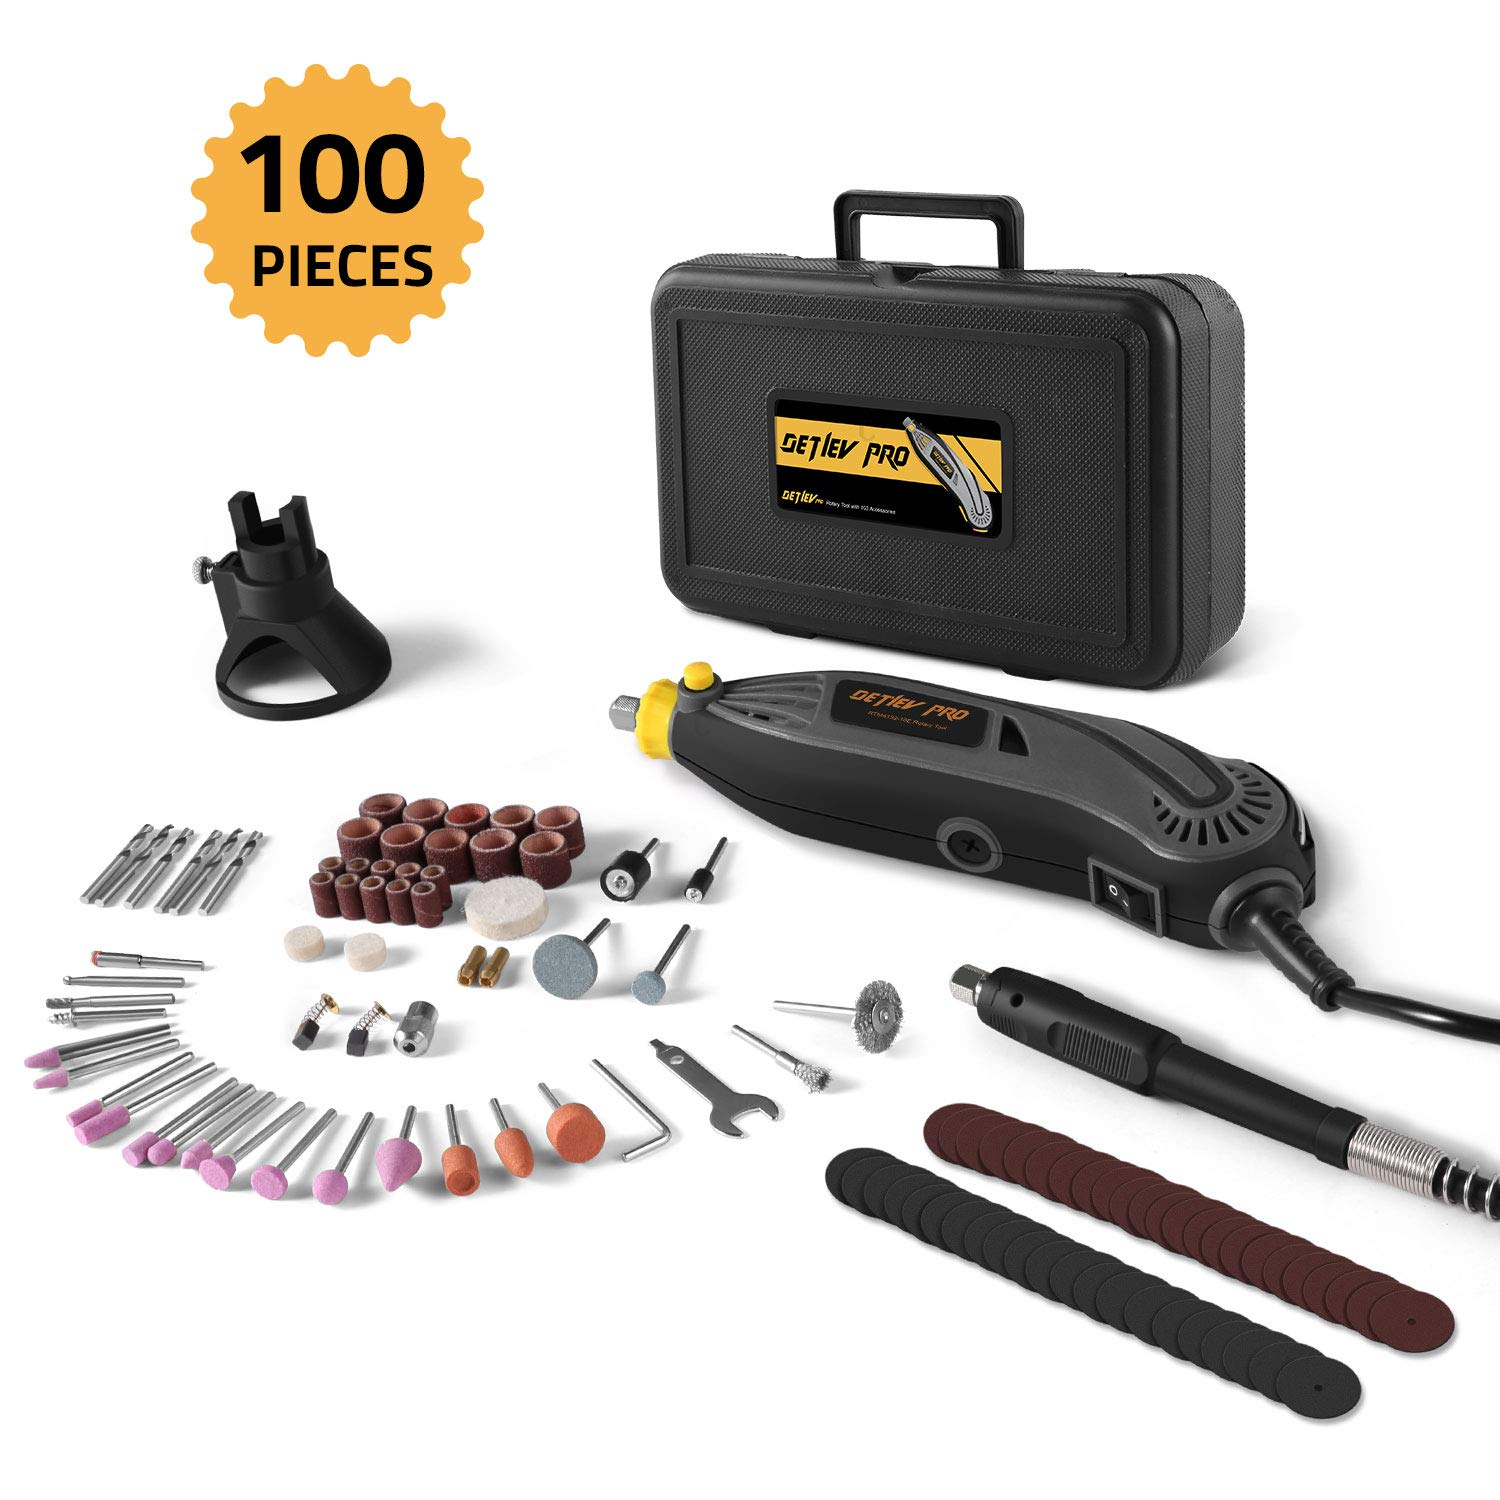 DETLEV PRO Rotary Tool Kit with 100 Accessories, 7 Variable Speed with Flexible Shaft for Cutting Sanding and Polishing, RTM4132-10E